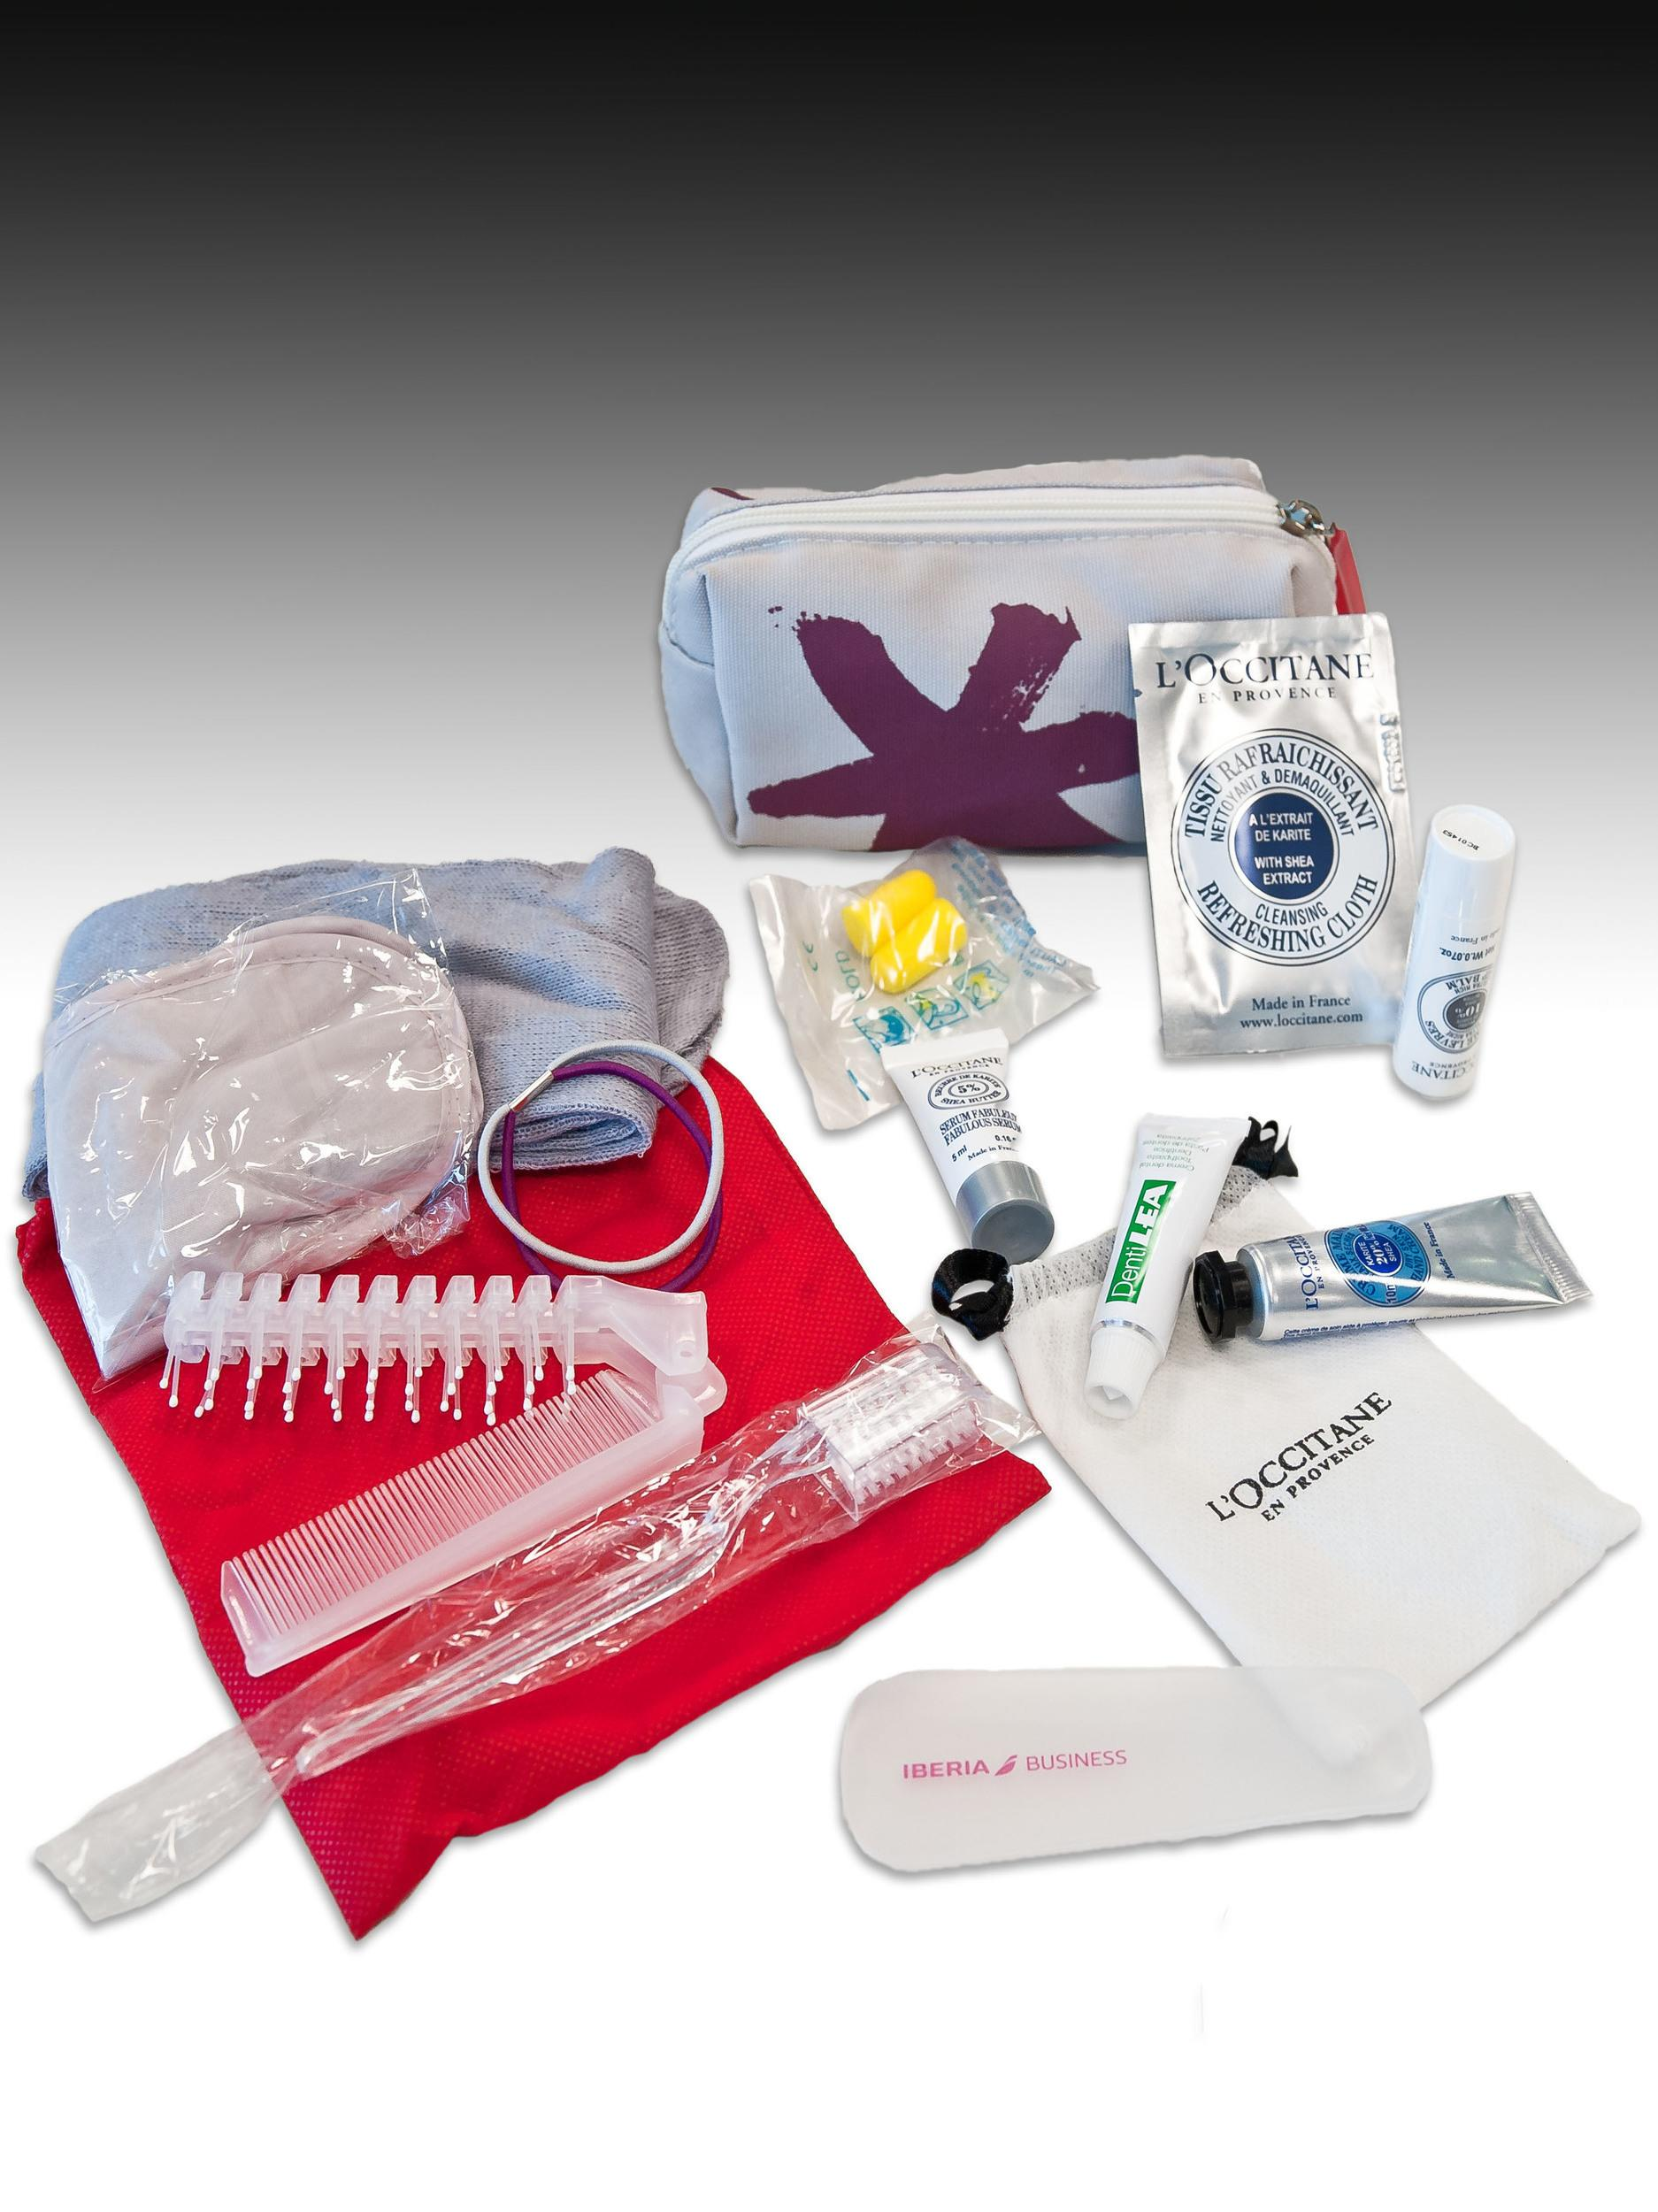 <p><strong>What do you get?</strong> Toothbrush, toothpaste, socks, ear plugs, eye mask, comb, eau de cologne, moisturiser, wet wipe, shoe bag, lip balm, hairbands</p>